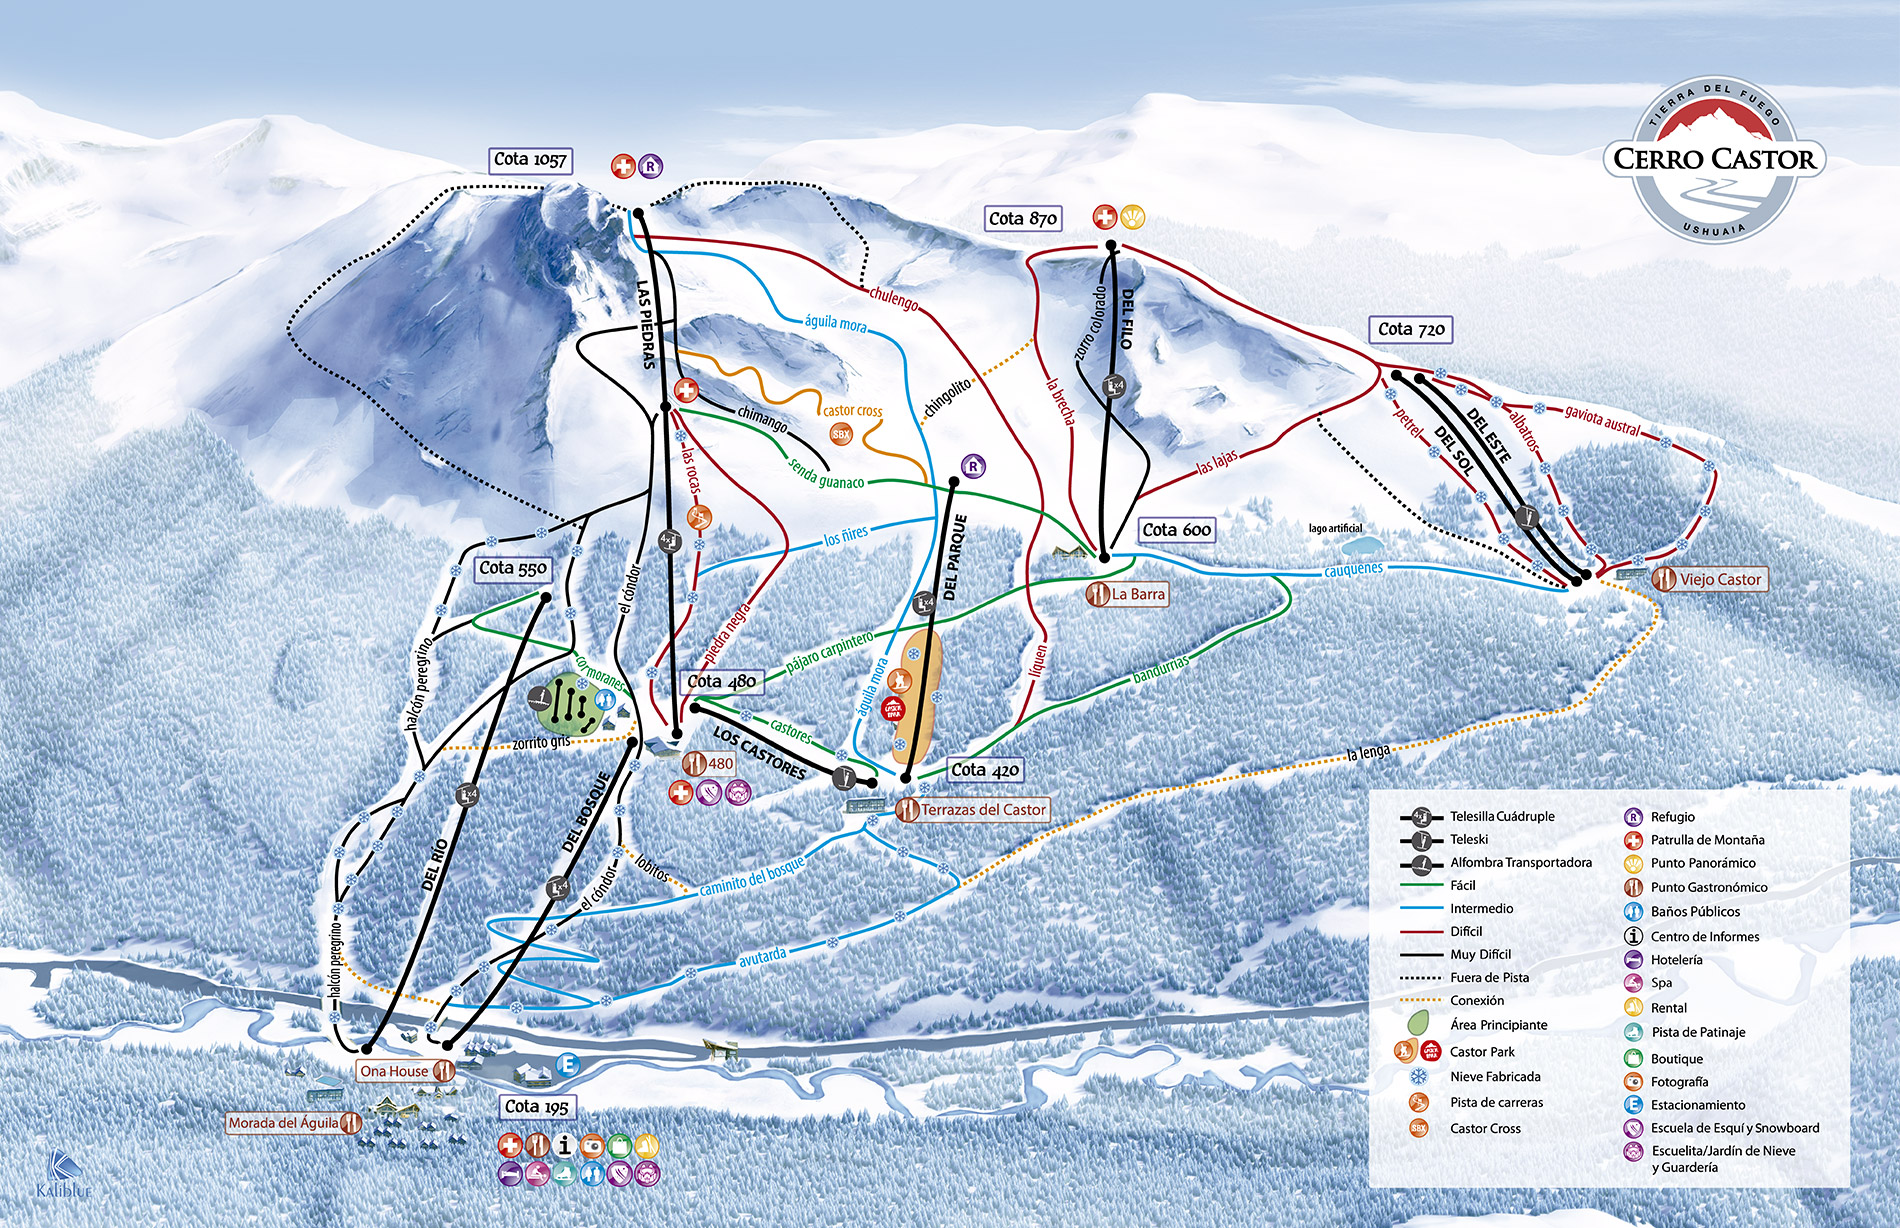 Cerro Castor Piste / Trail Map